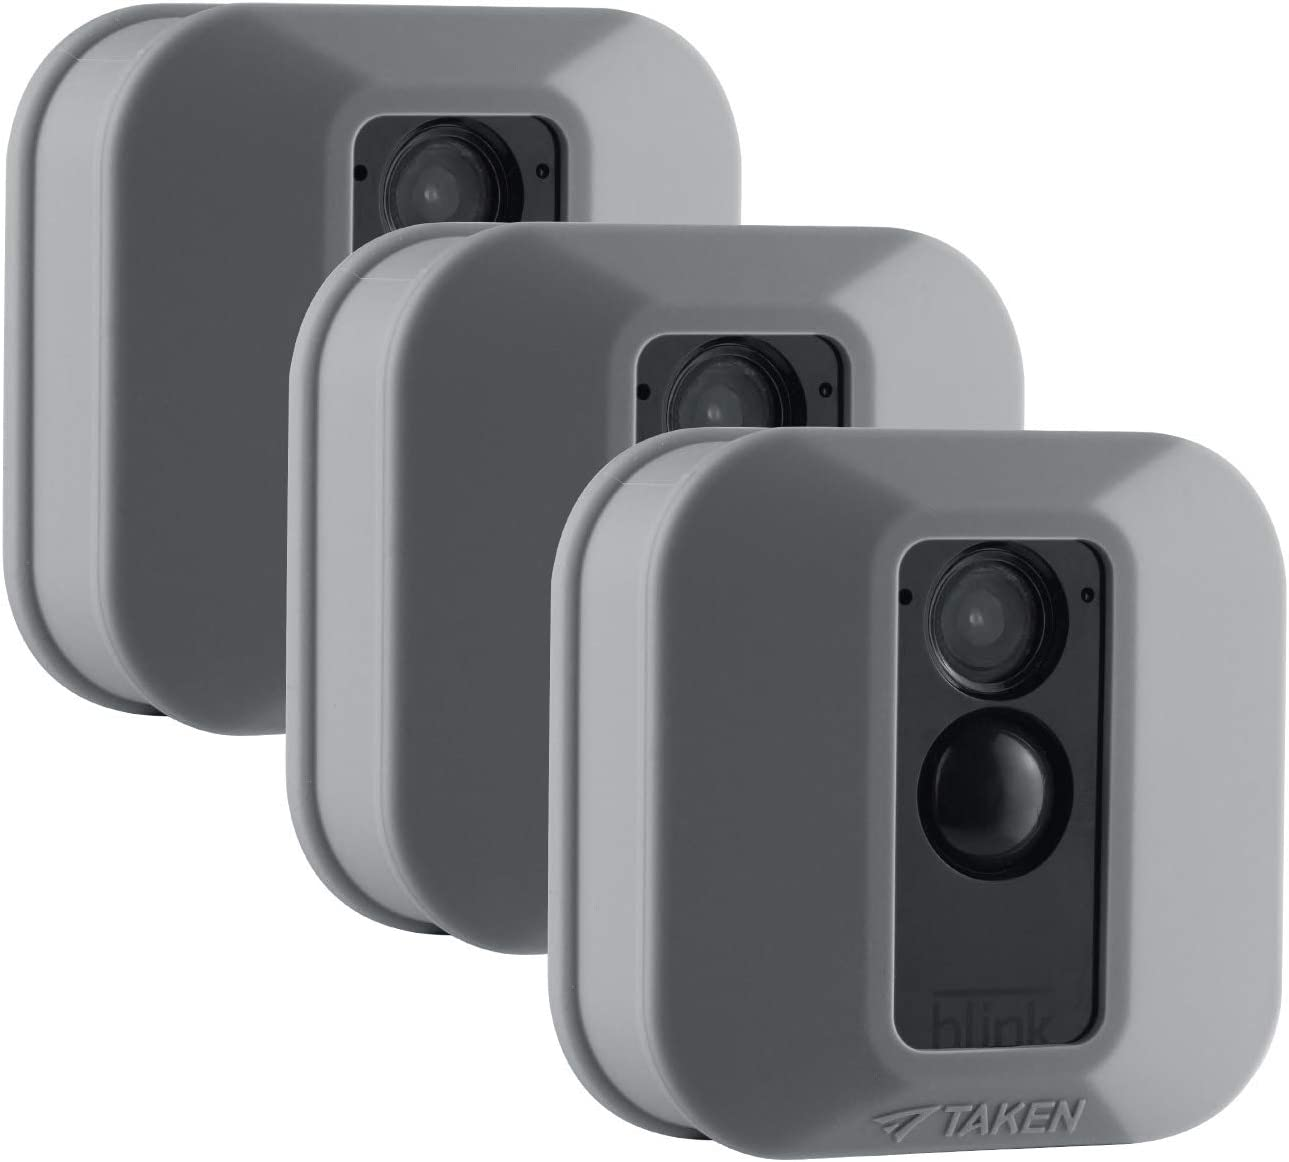 Don't miss the campaign Silicone Covers Skins for Blink XT XT2 Camera Silicon C Ranking TOP15 Security